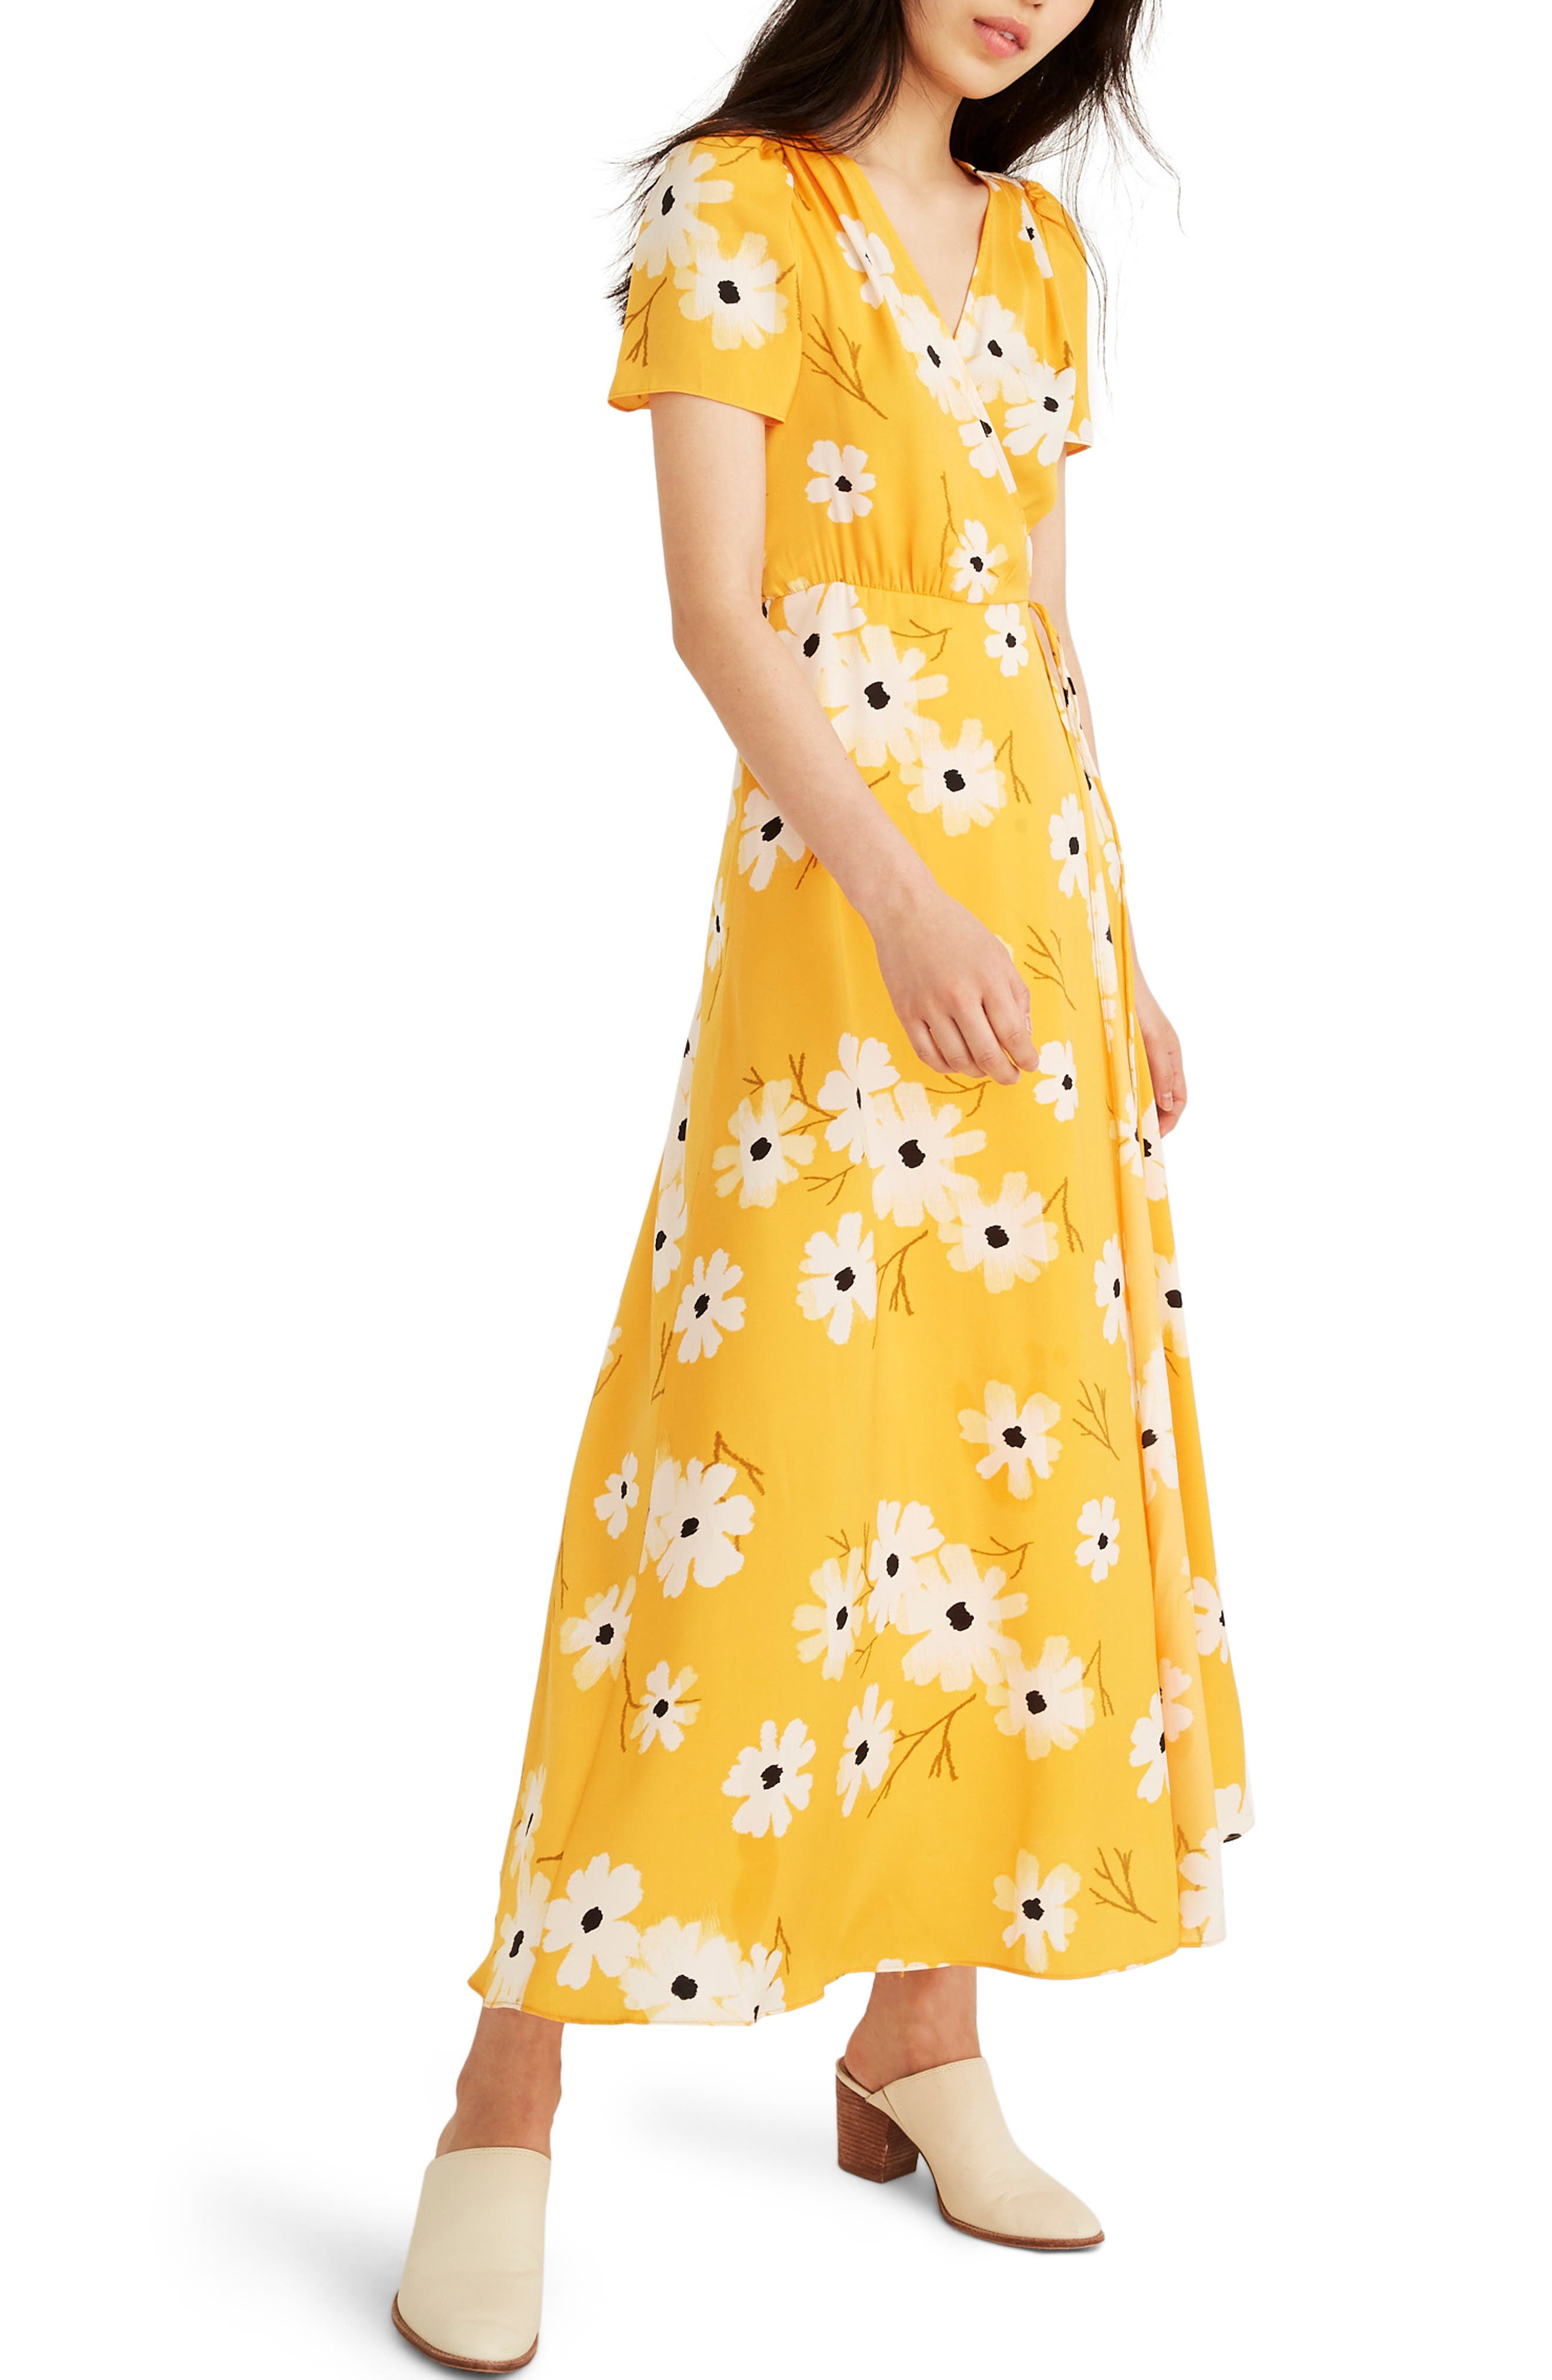 Madewell Ikat Floral Puff Sleeve Wrap Dress, Yellow